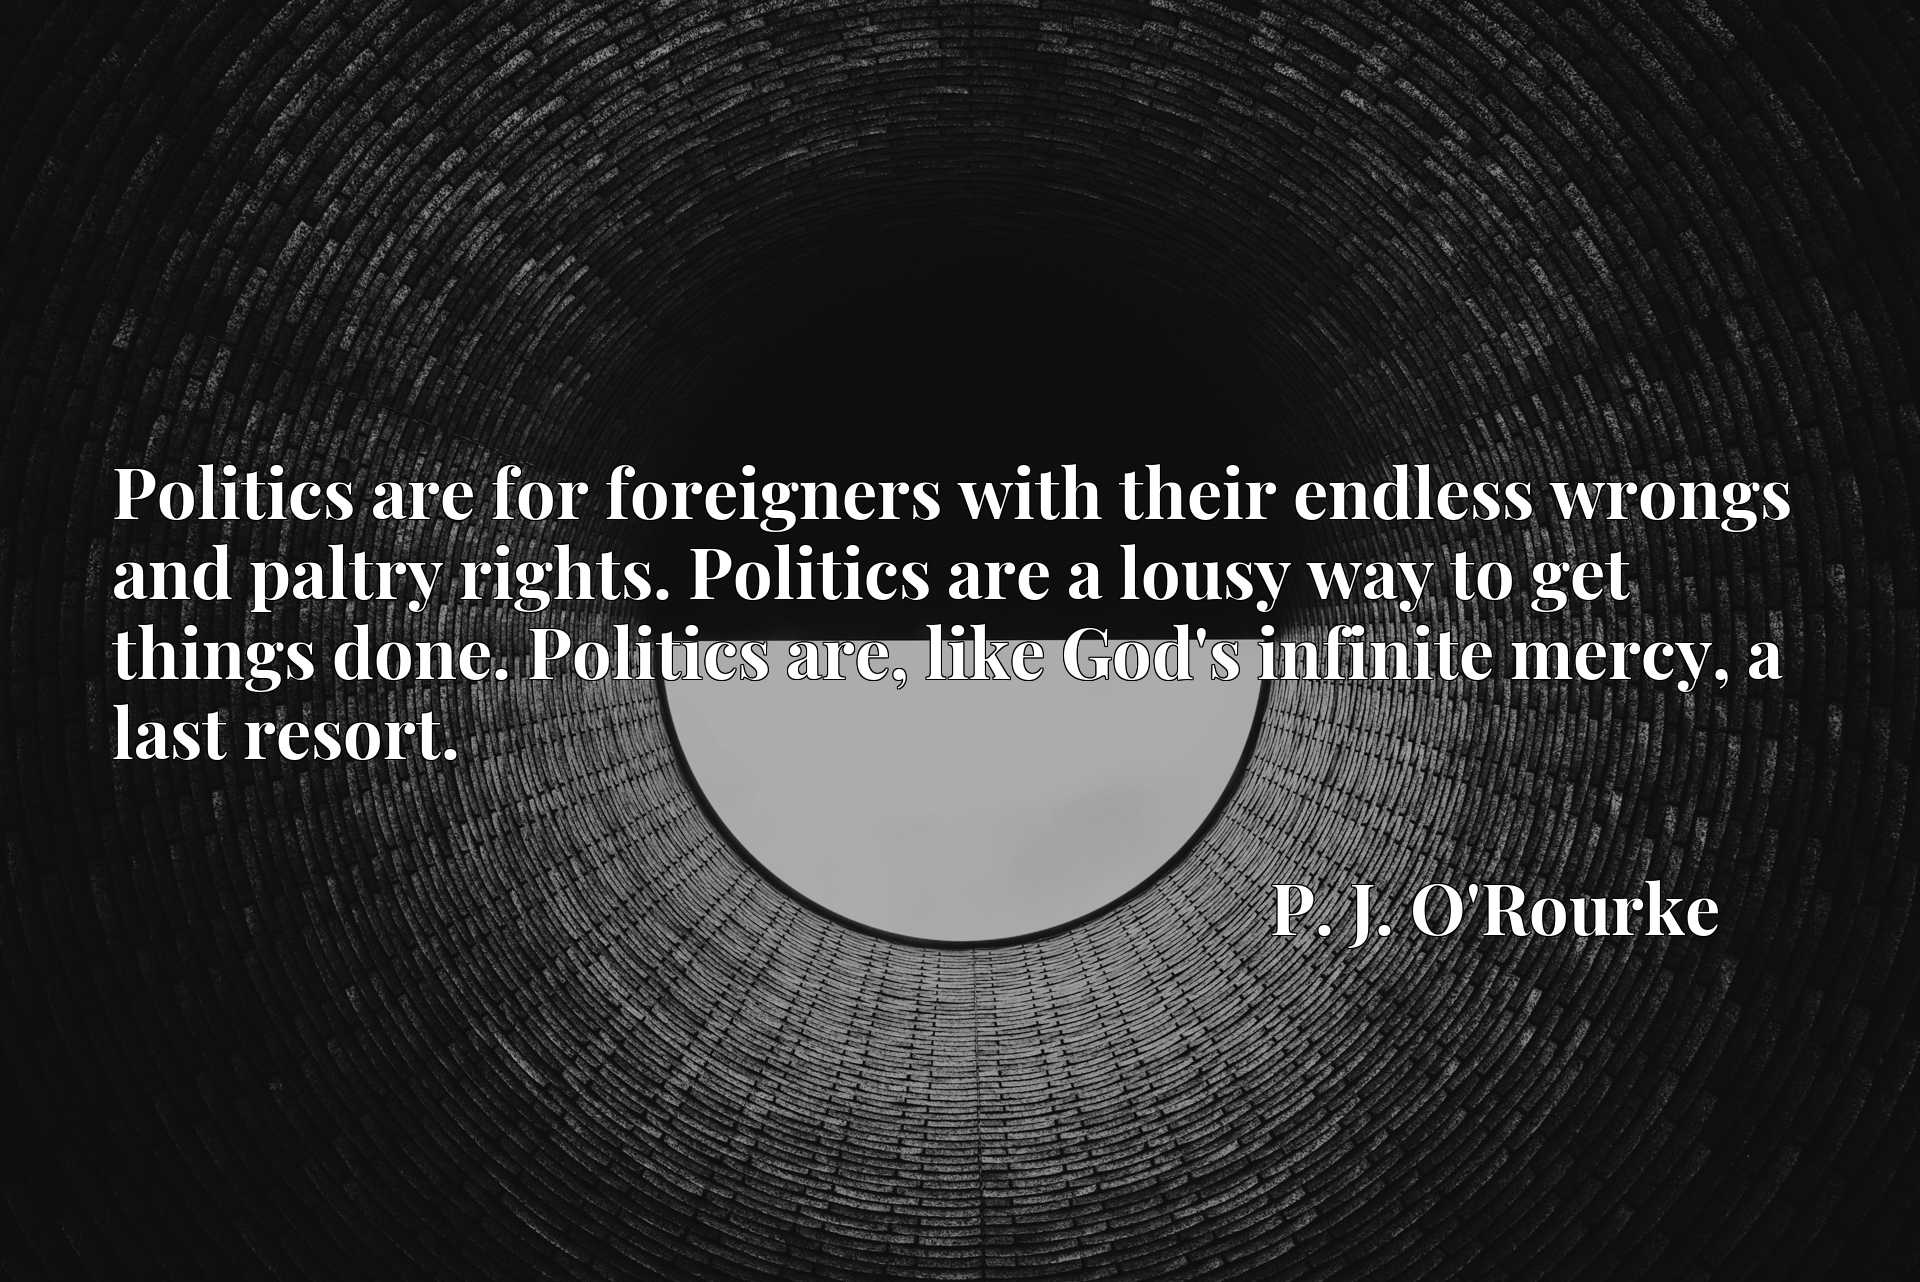 Politics are for foreigners with their endless wrongs and paltry rights. Politics are a lousy way to get things done. Politics are, like God's infinite mercy, a last resort.